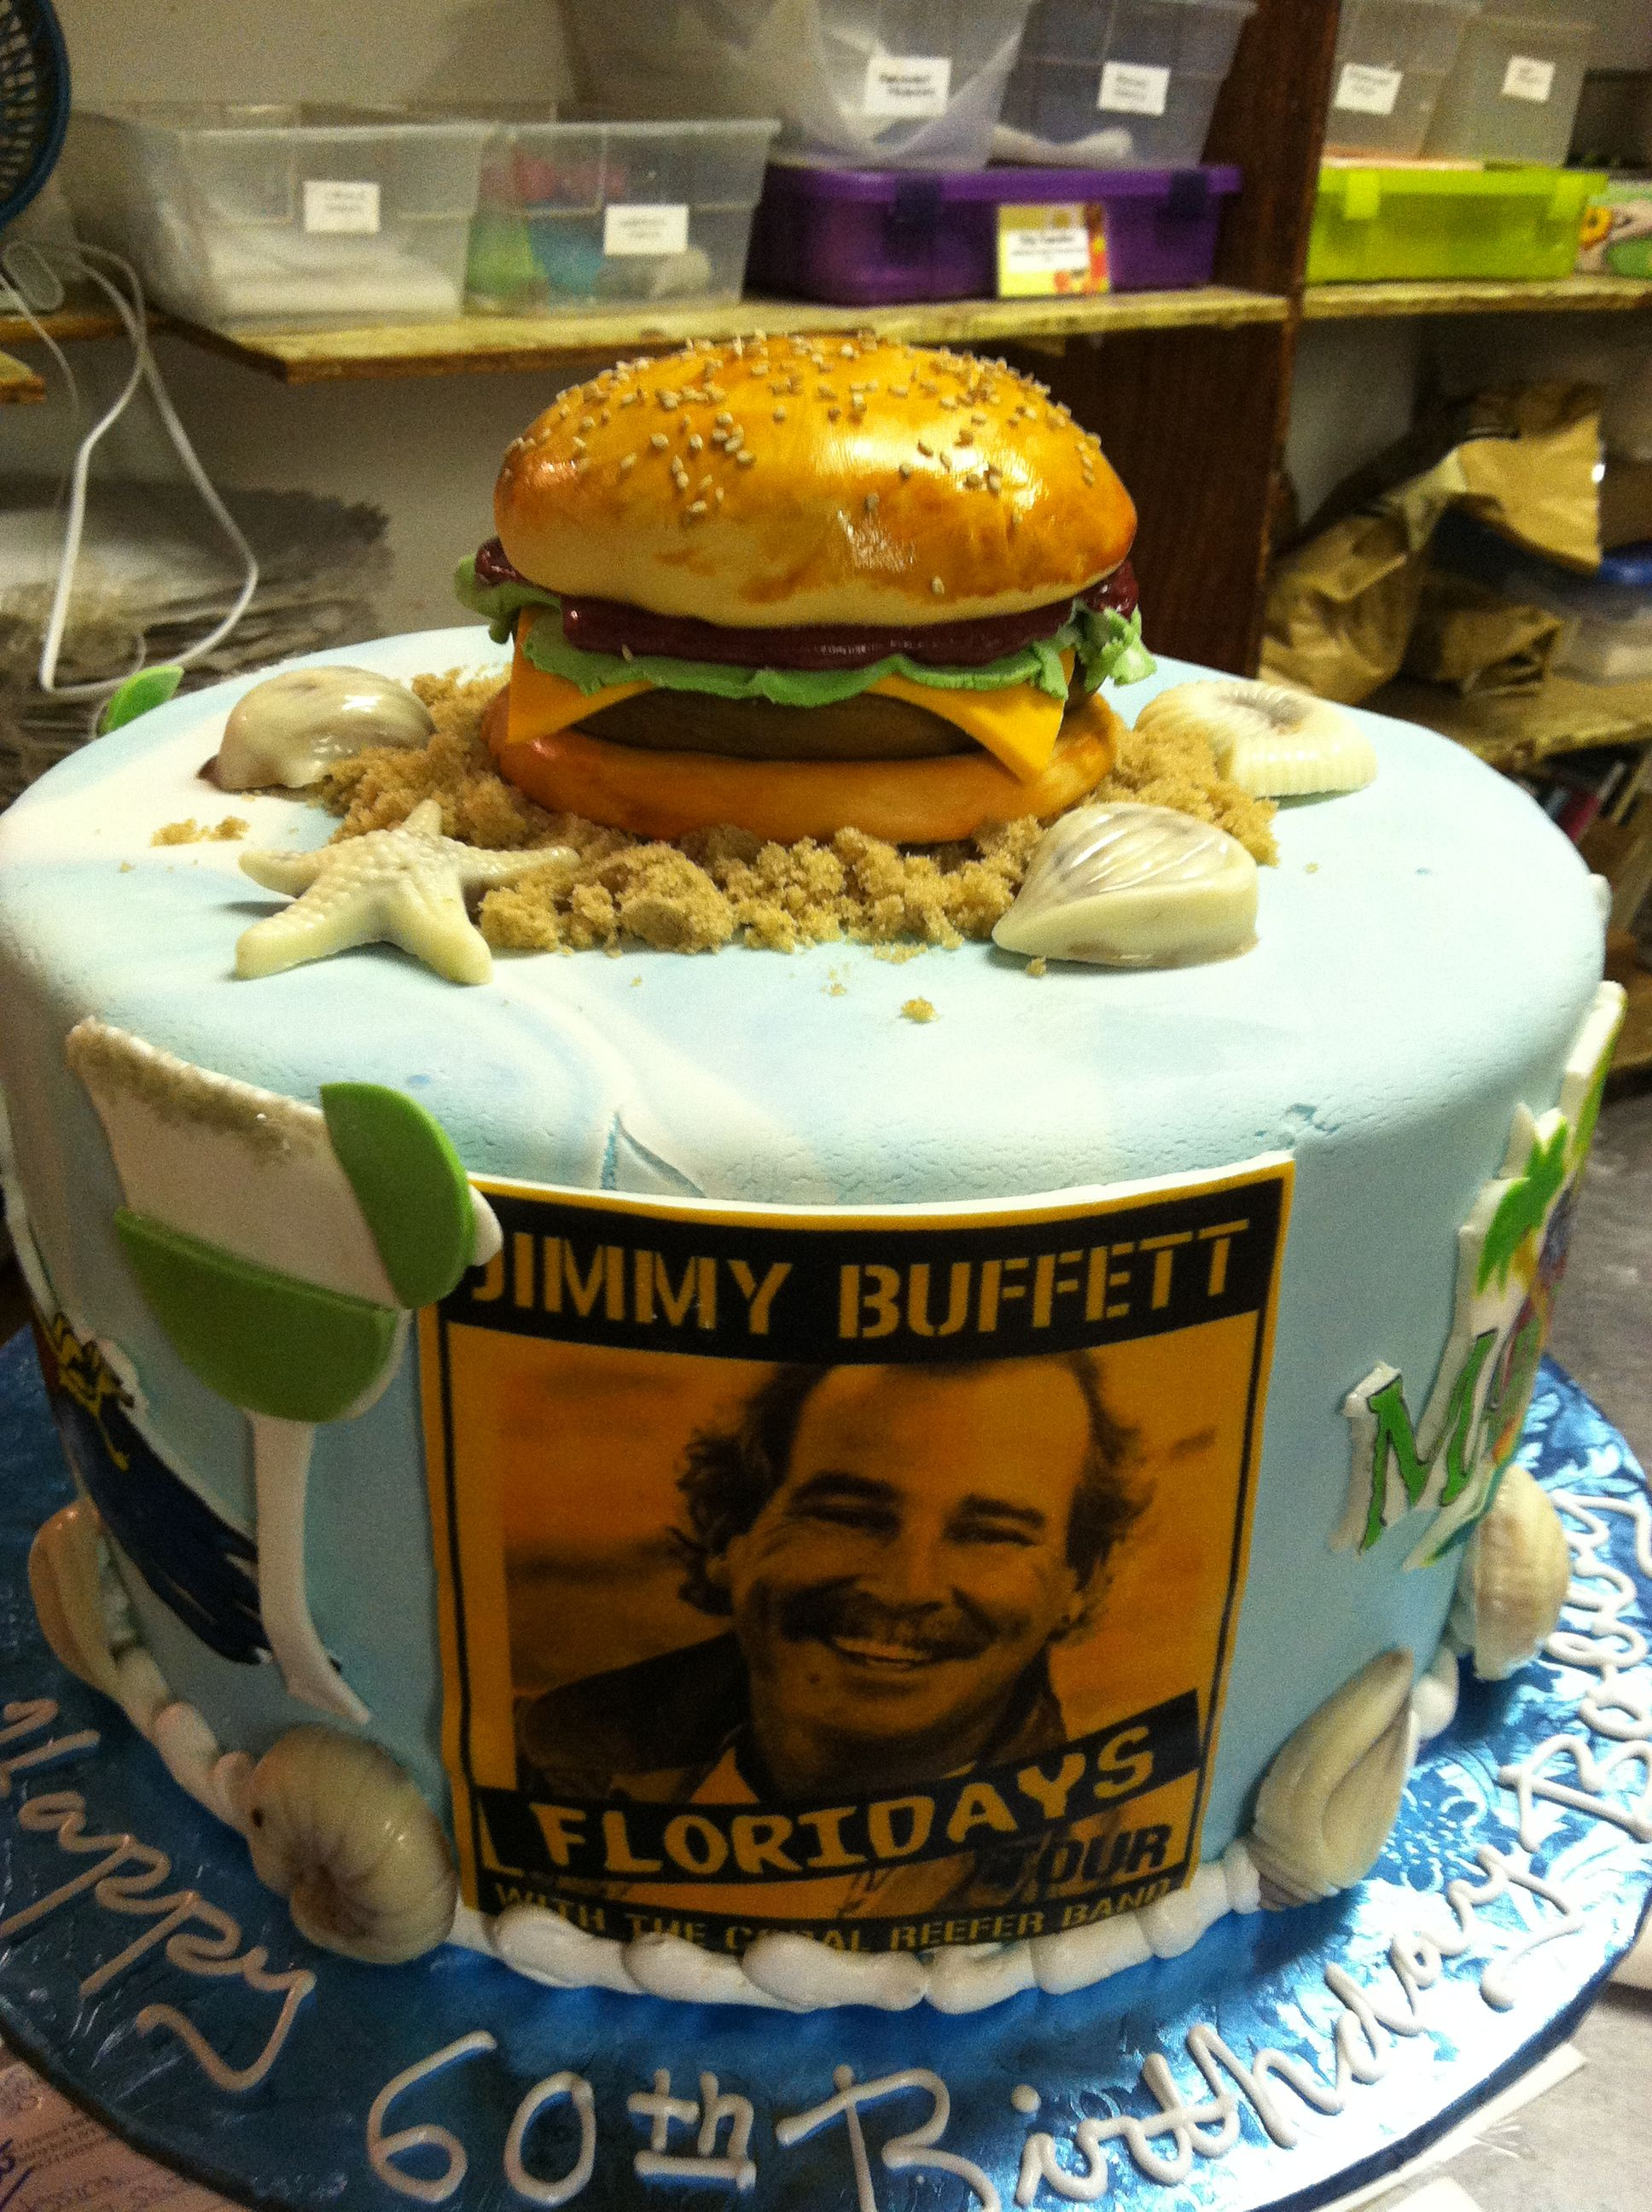 Jimmy Buffett themed cake. Note references to songs ...